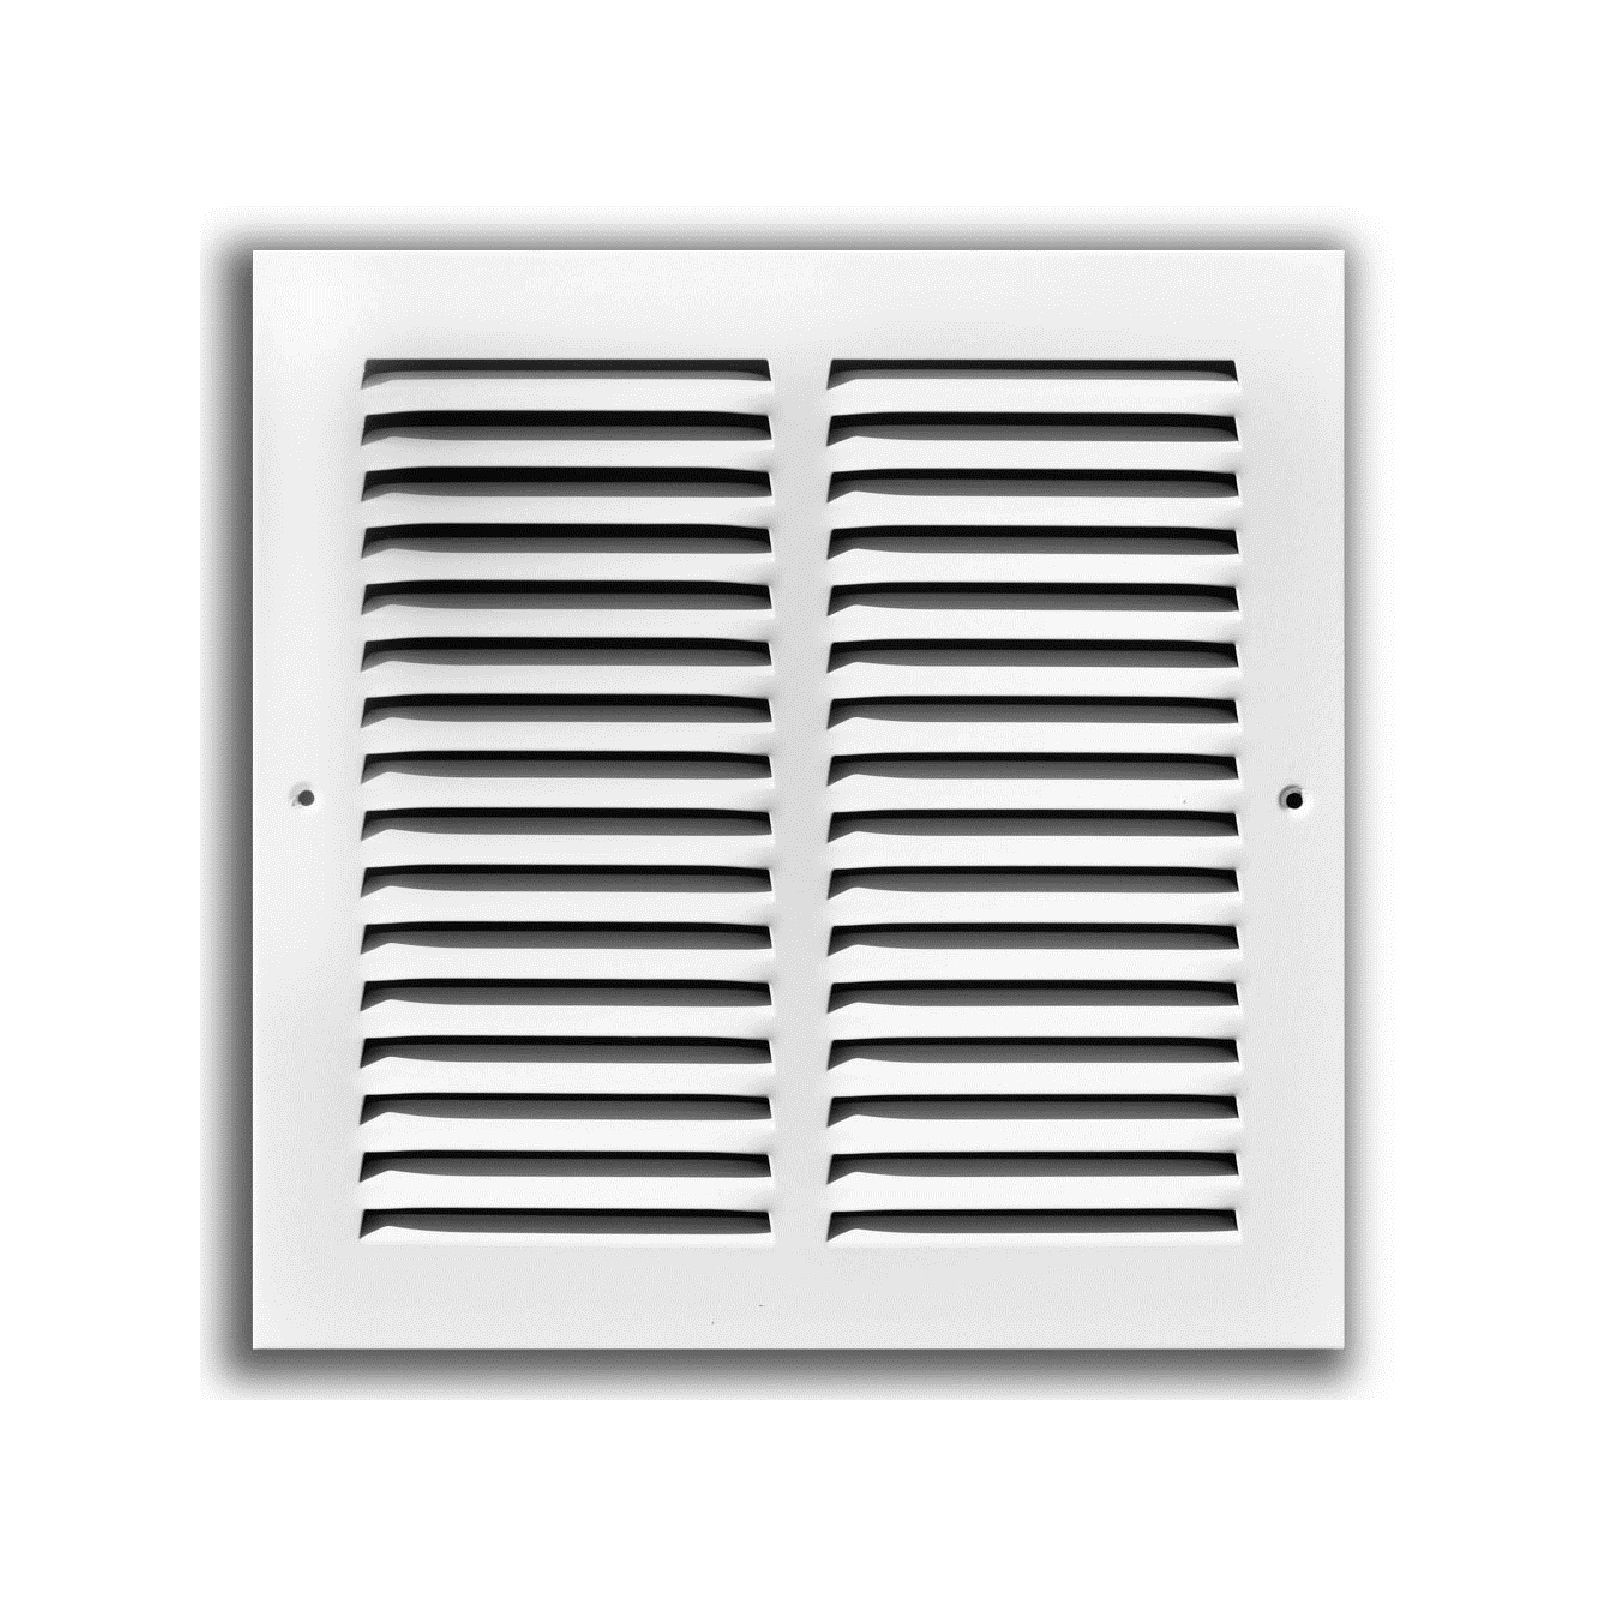 "TRUaire 170 12X24 - Steel Return Air Grille - 1/2"" Spaced Fin, White, 12"" X 24"""